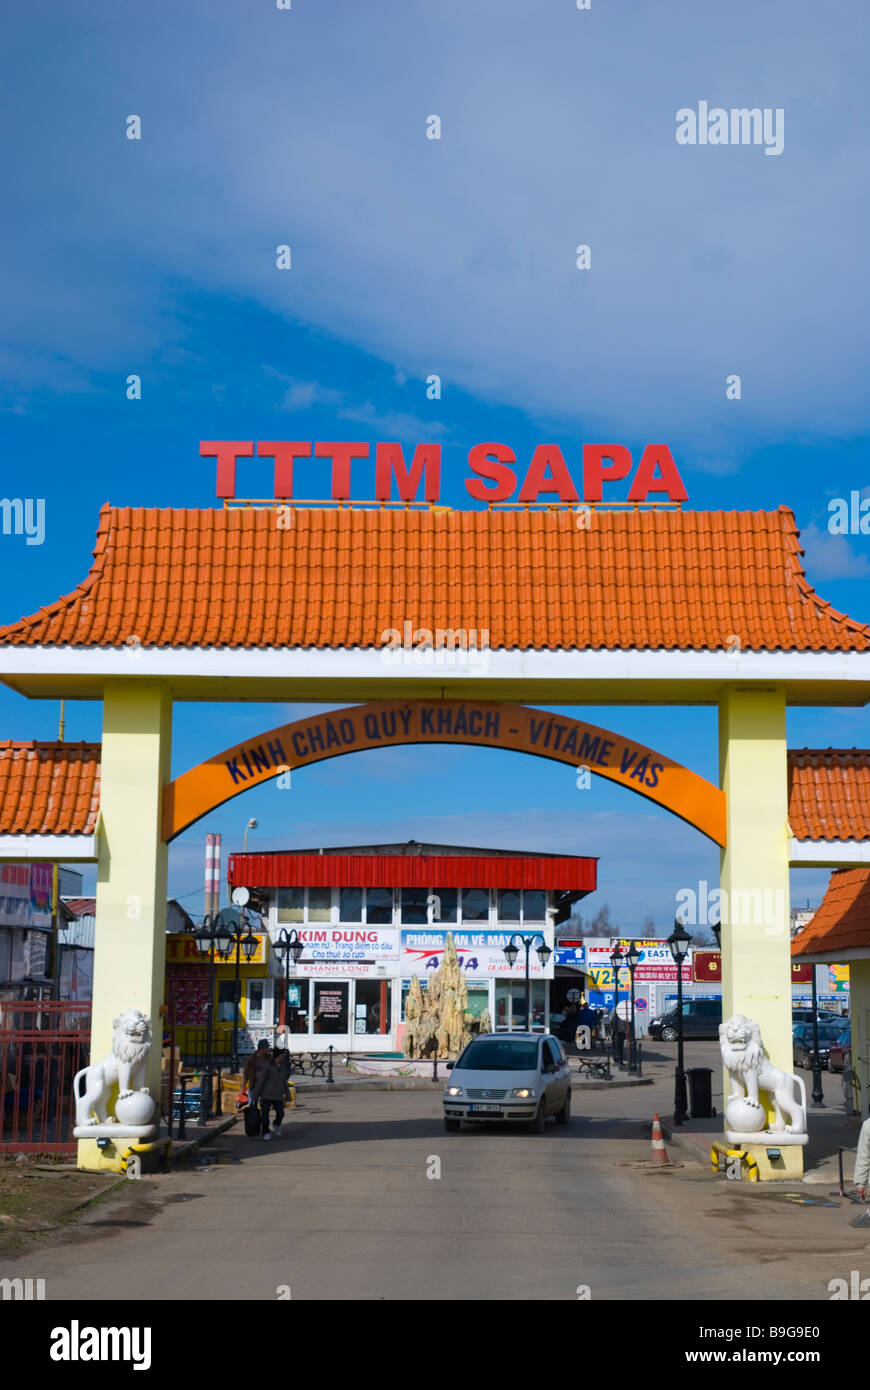 Gates of SAPA the Asia Trade Centre in Libus district in outskirts of Prague Czech Republic Europe - Stock Image